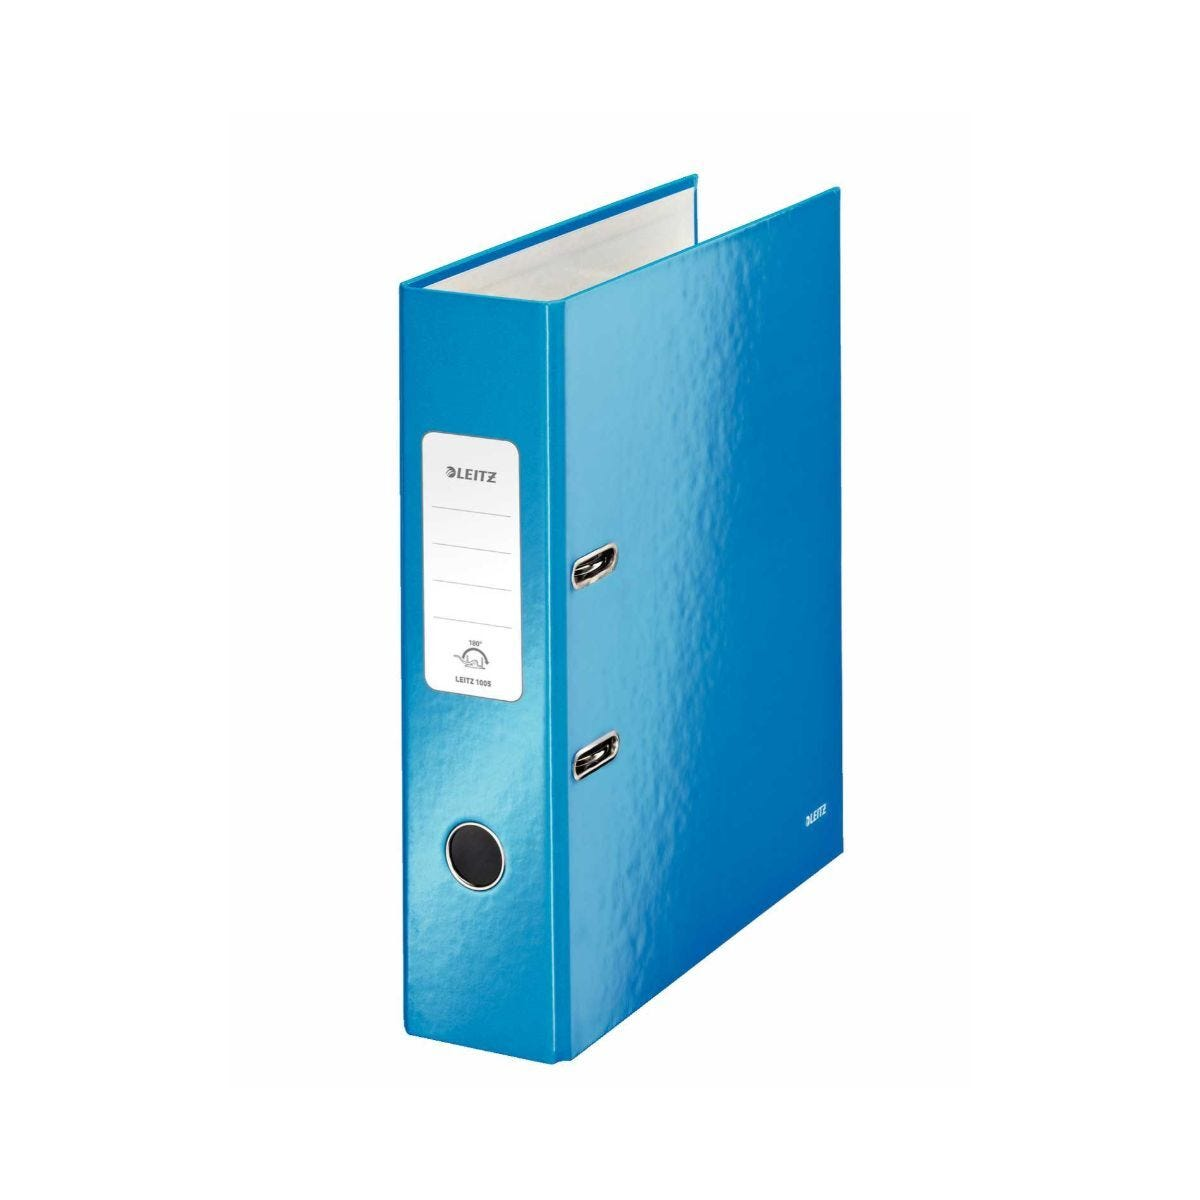 Leitz 180 WOW Laminated A4 Lever Arch File Blue